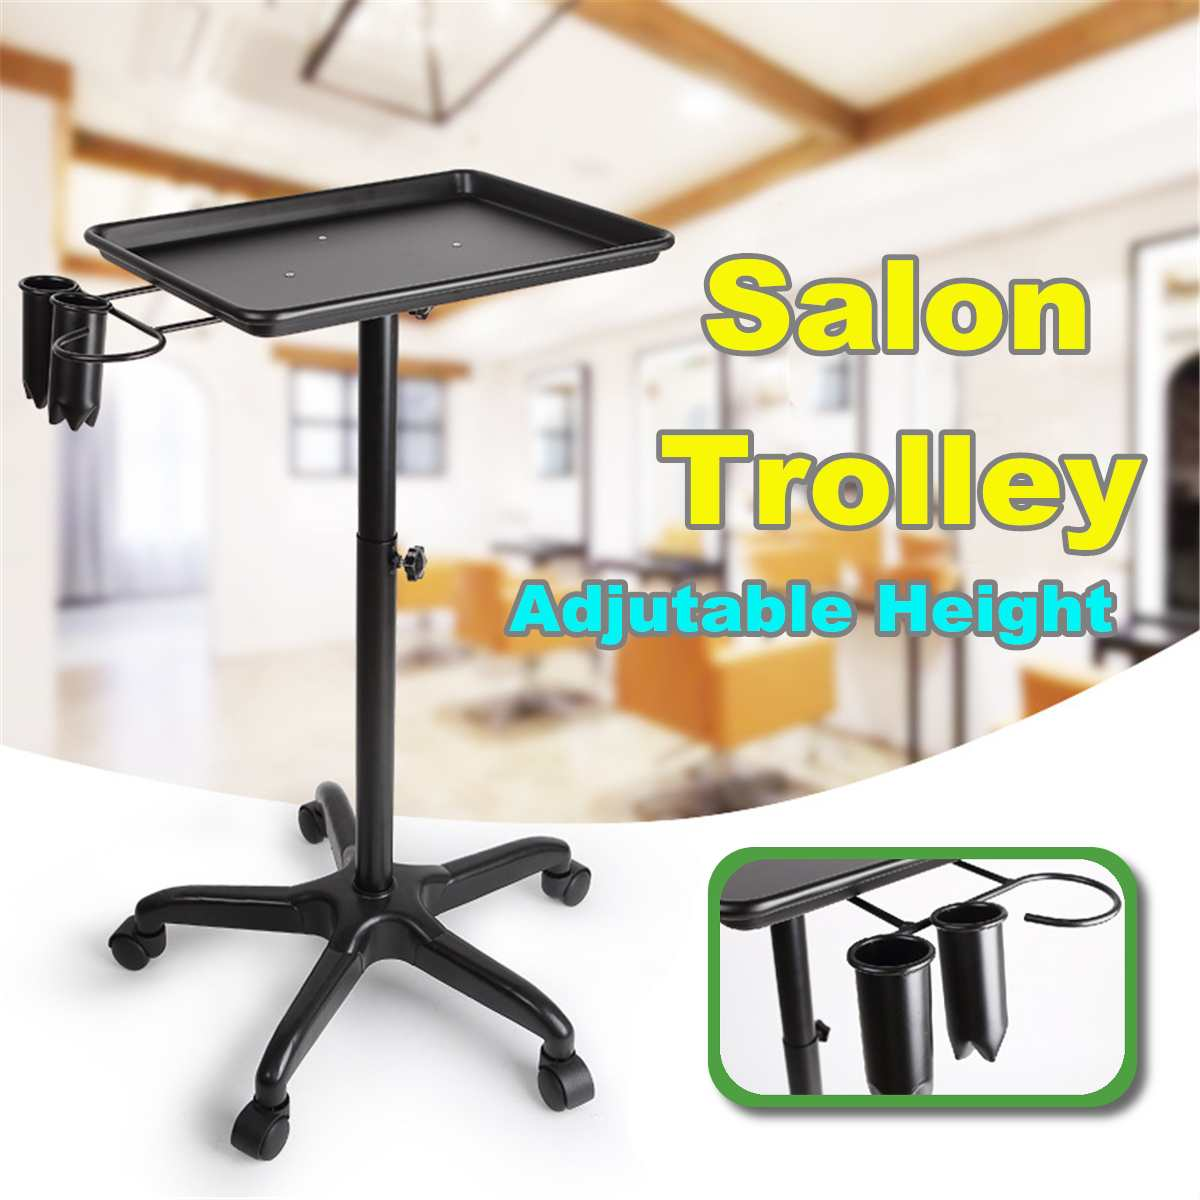 New Salon Hairdresser Tattoo Service Trolley Station Colouring Hair Dentist Medical